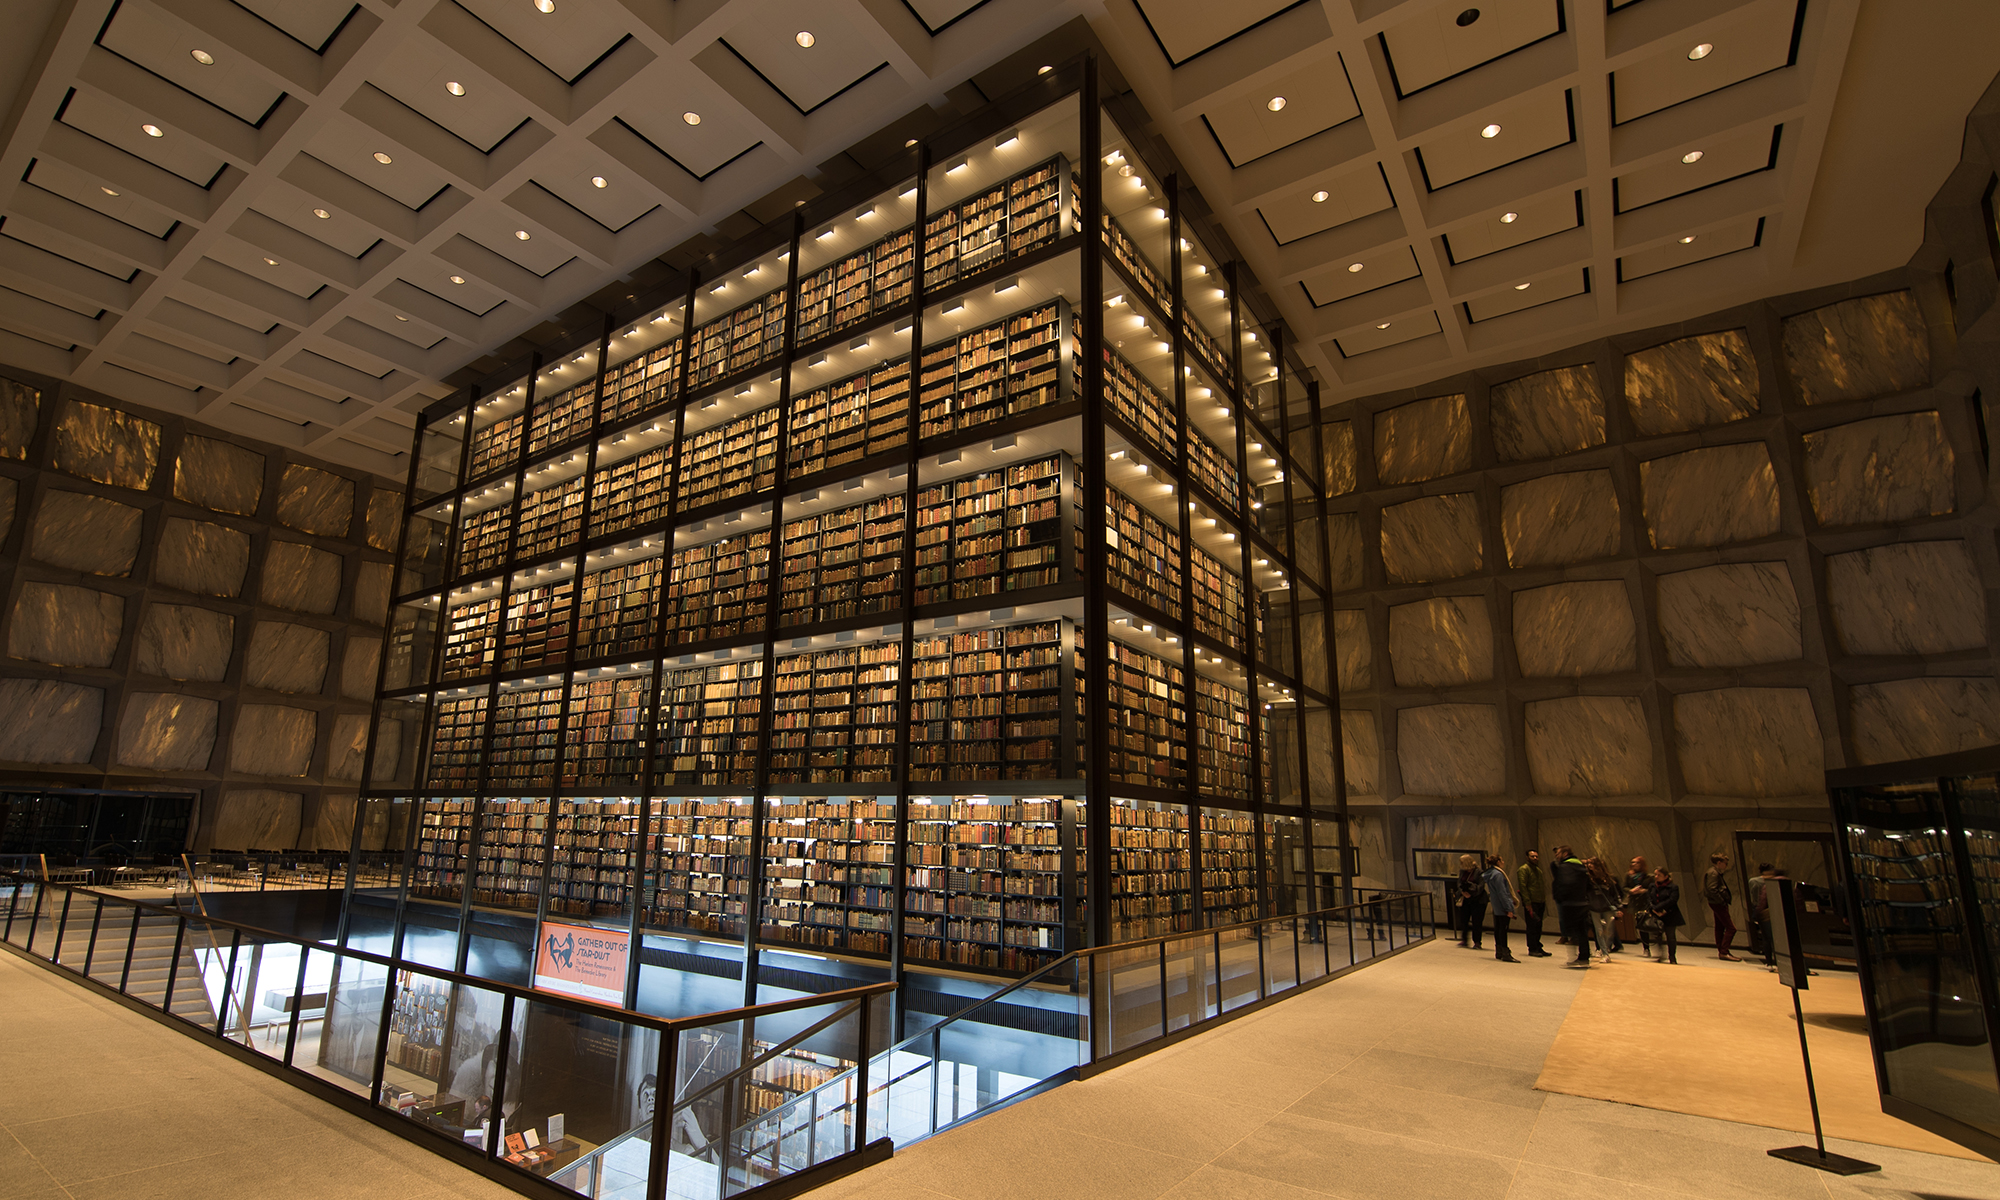 Beinecke-Rare-Book-and-Manuscript-Library.jpg